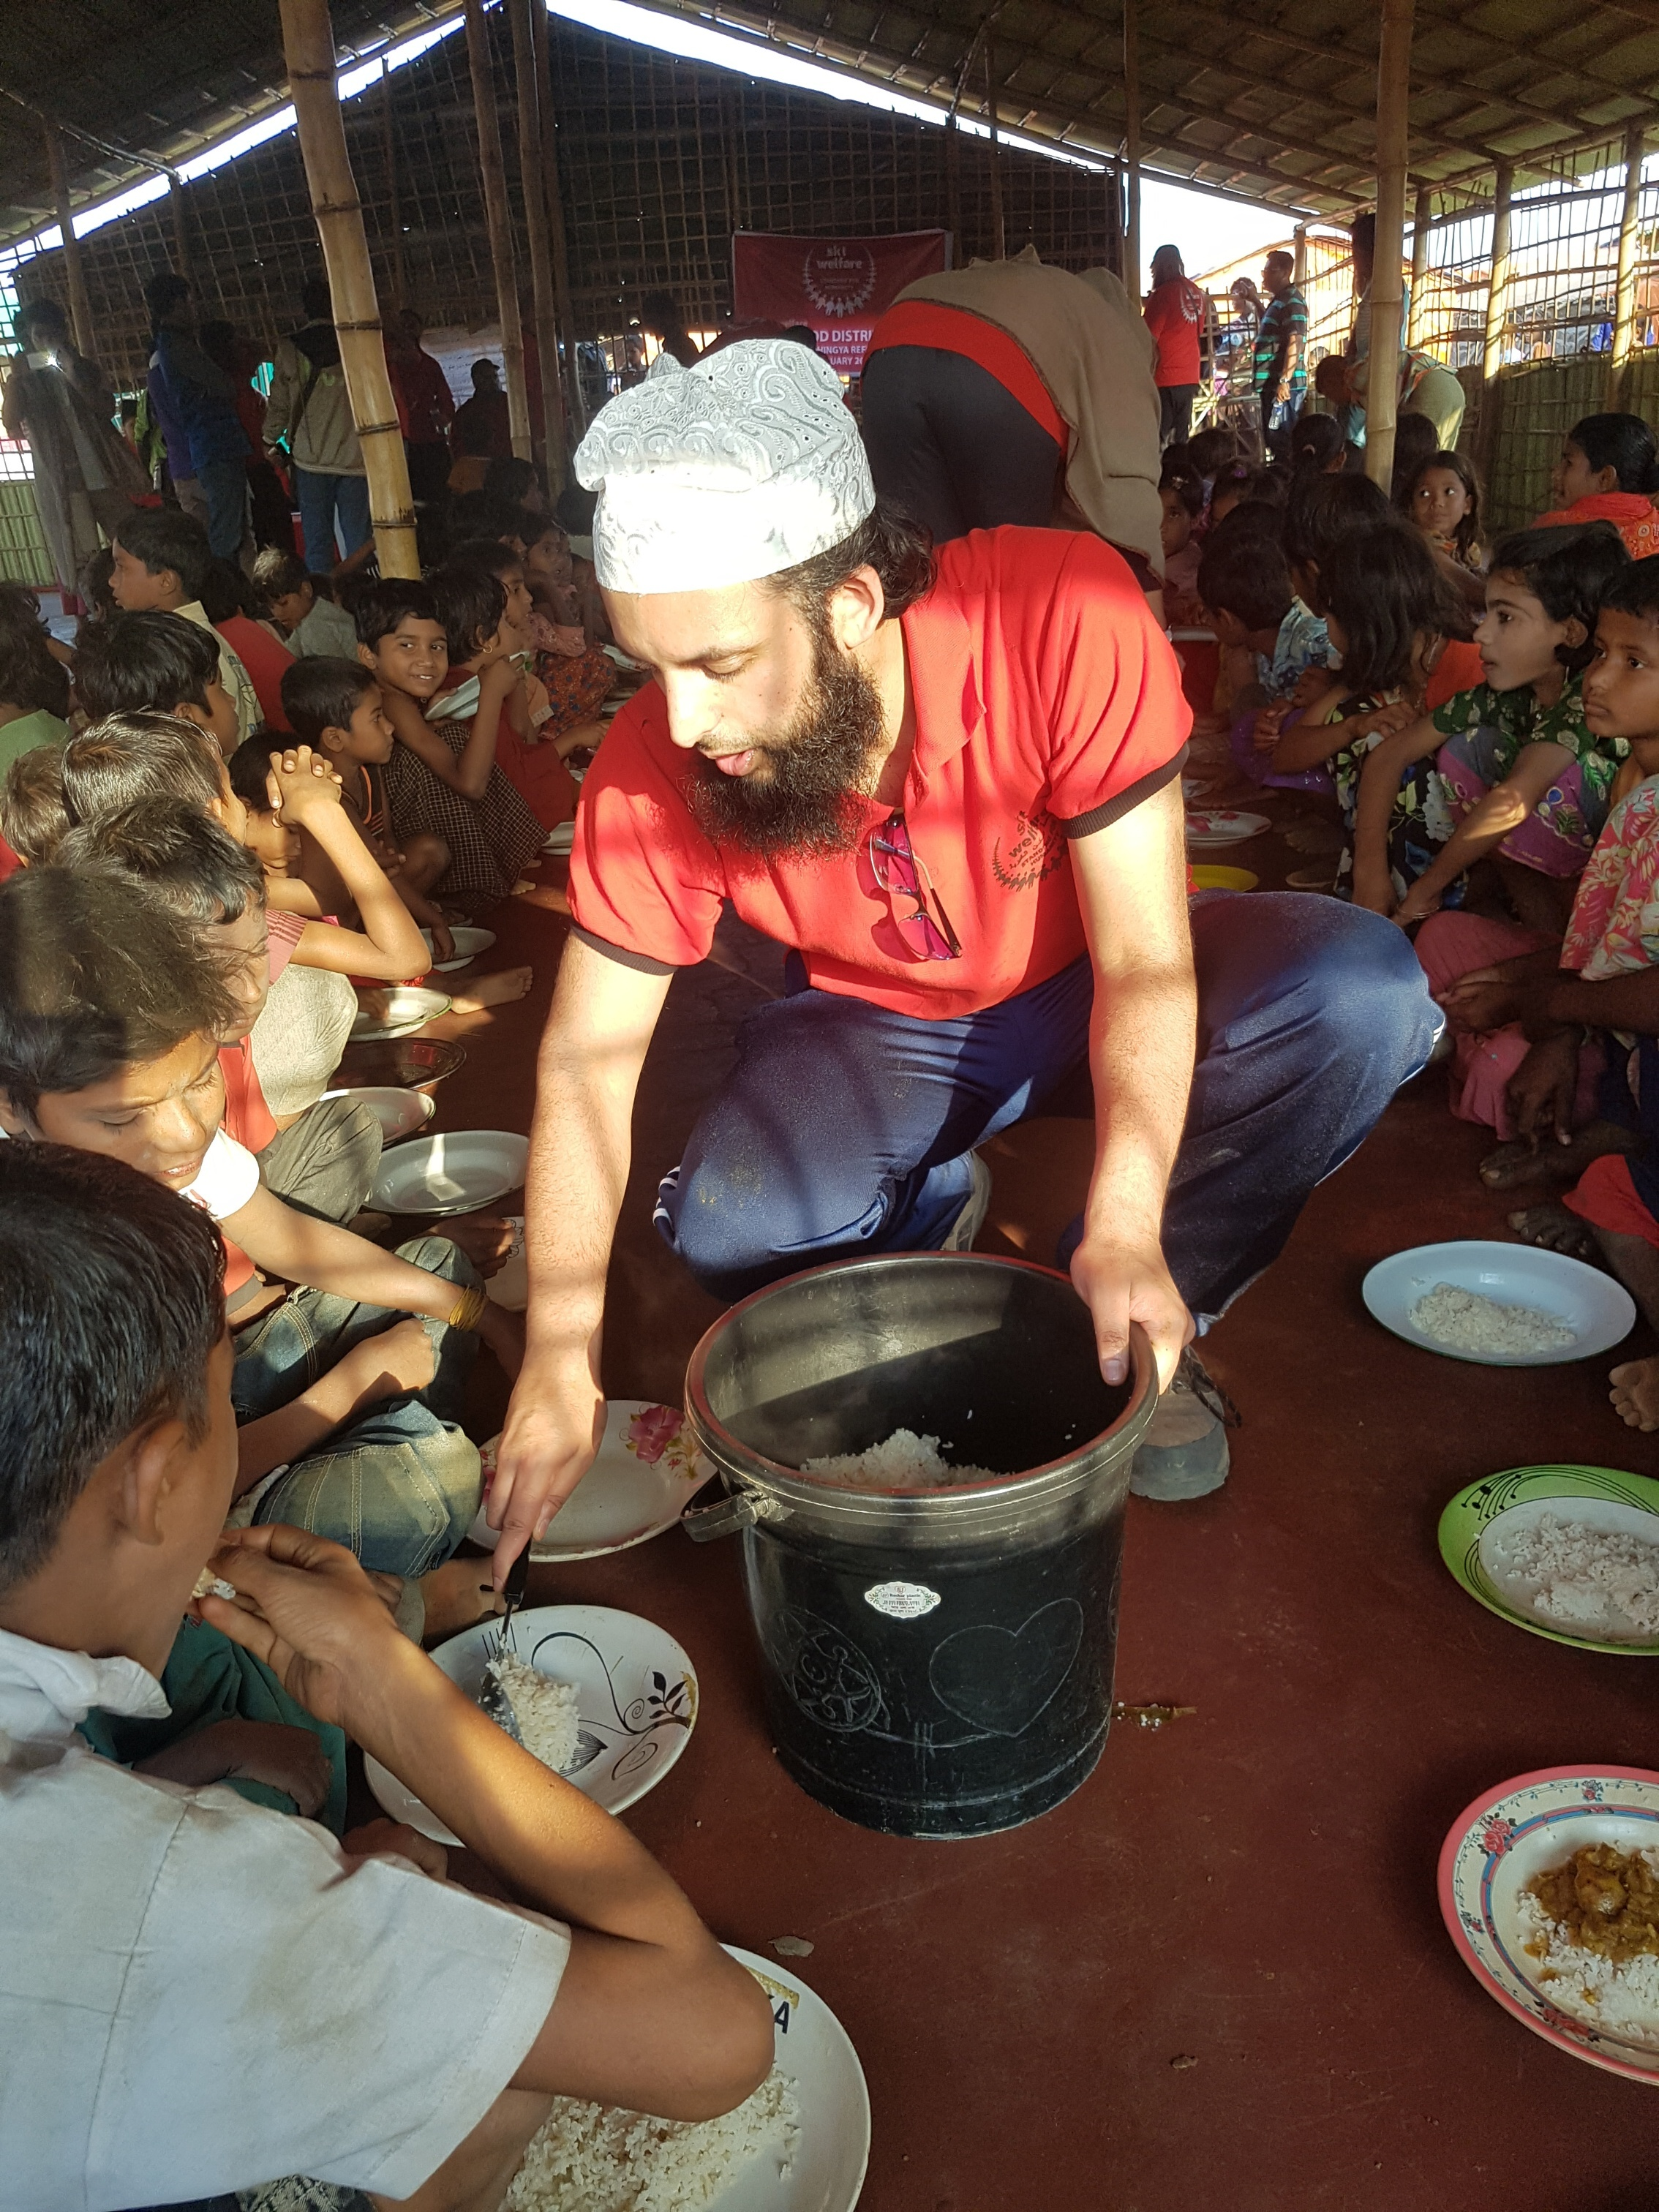 Human Relief Foundation and Nazim Ali to visit Mosul on Ramadan aid trip